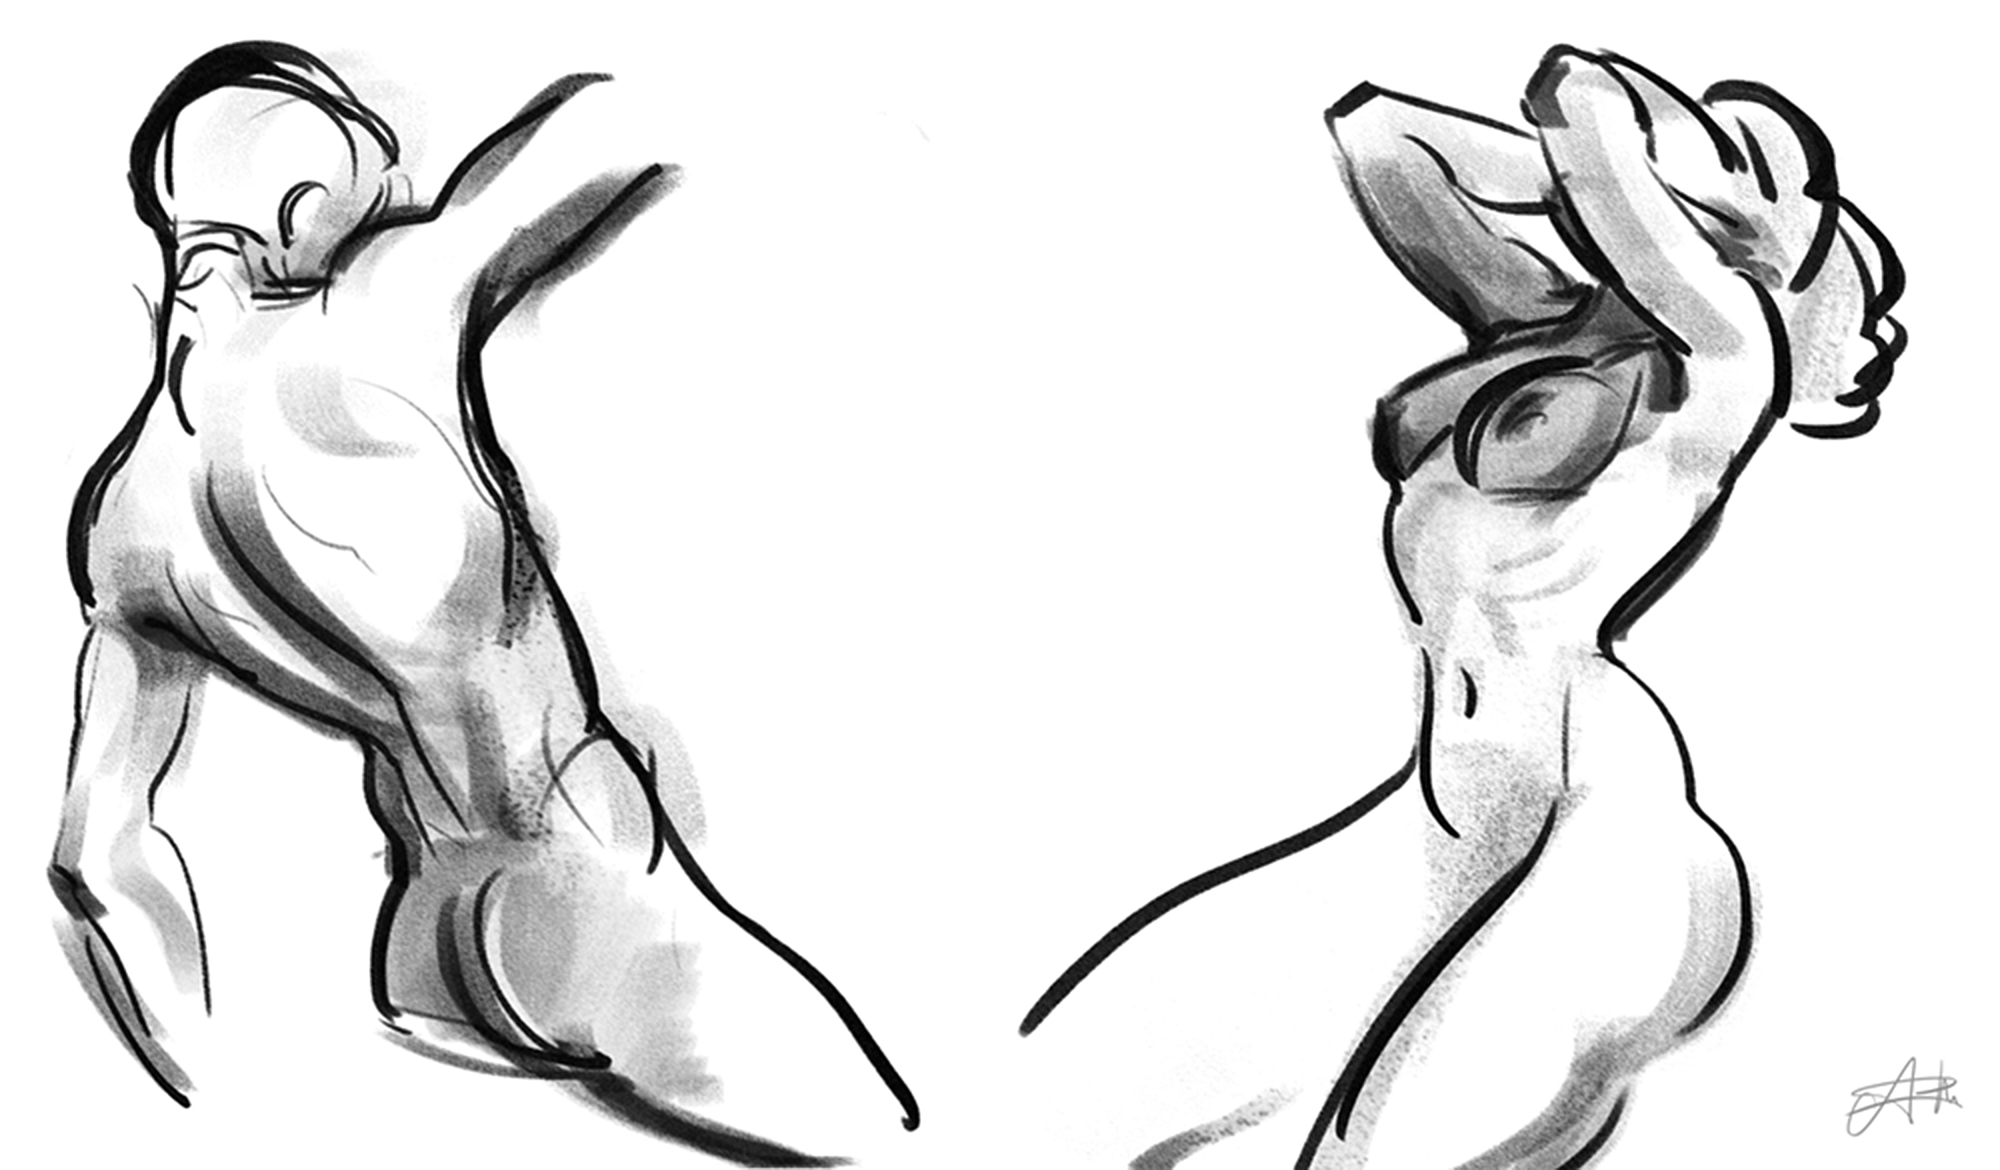 2000x1170 Random Anatomy Pose Sketches From Imagination By Arcroto